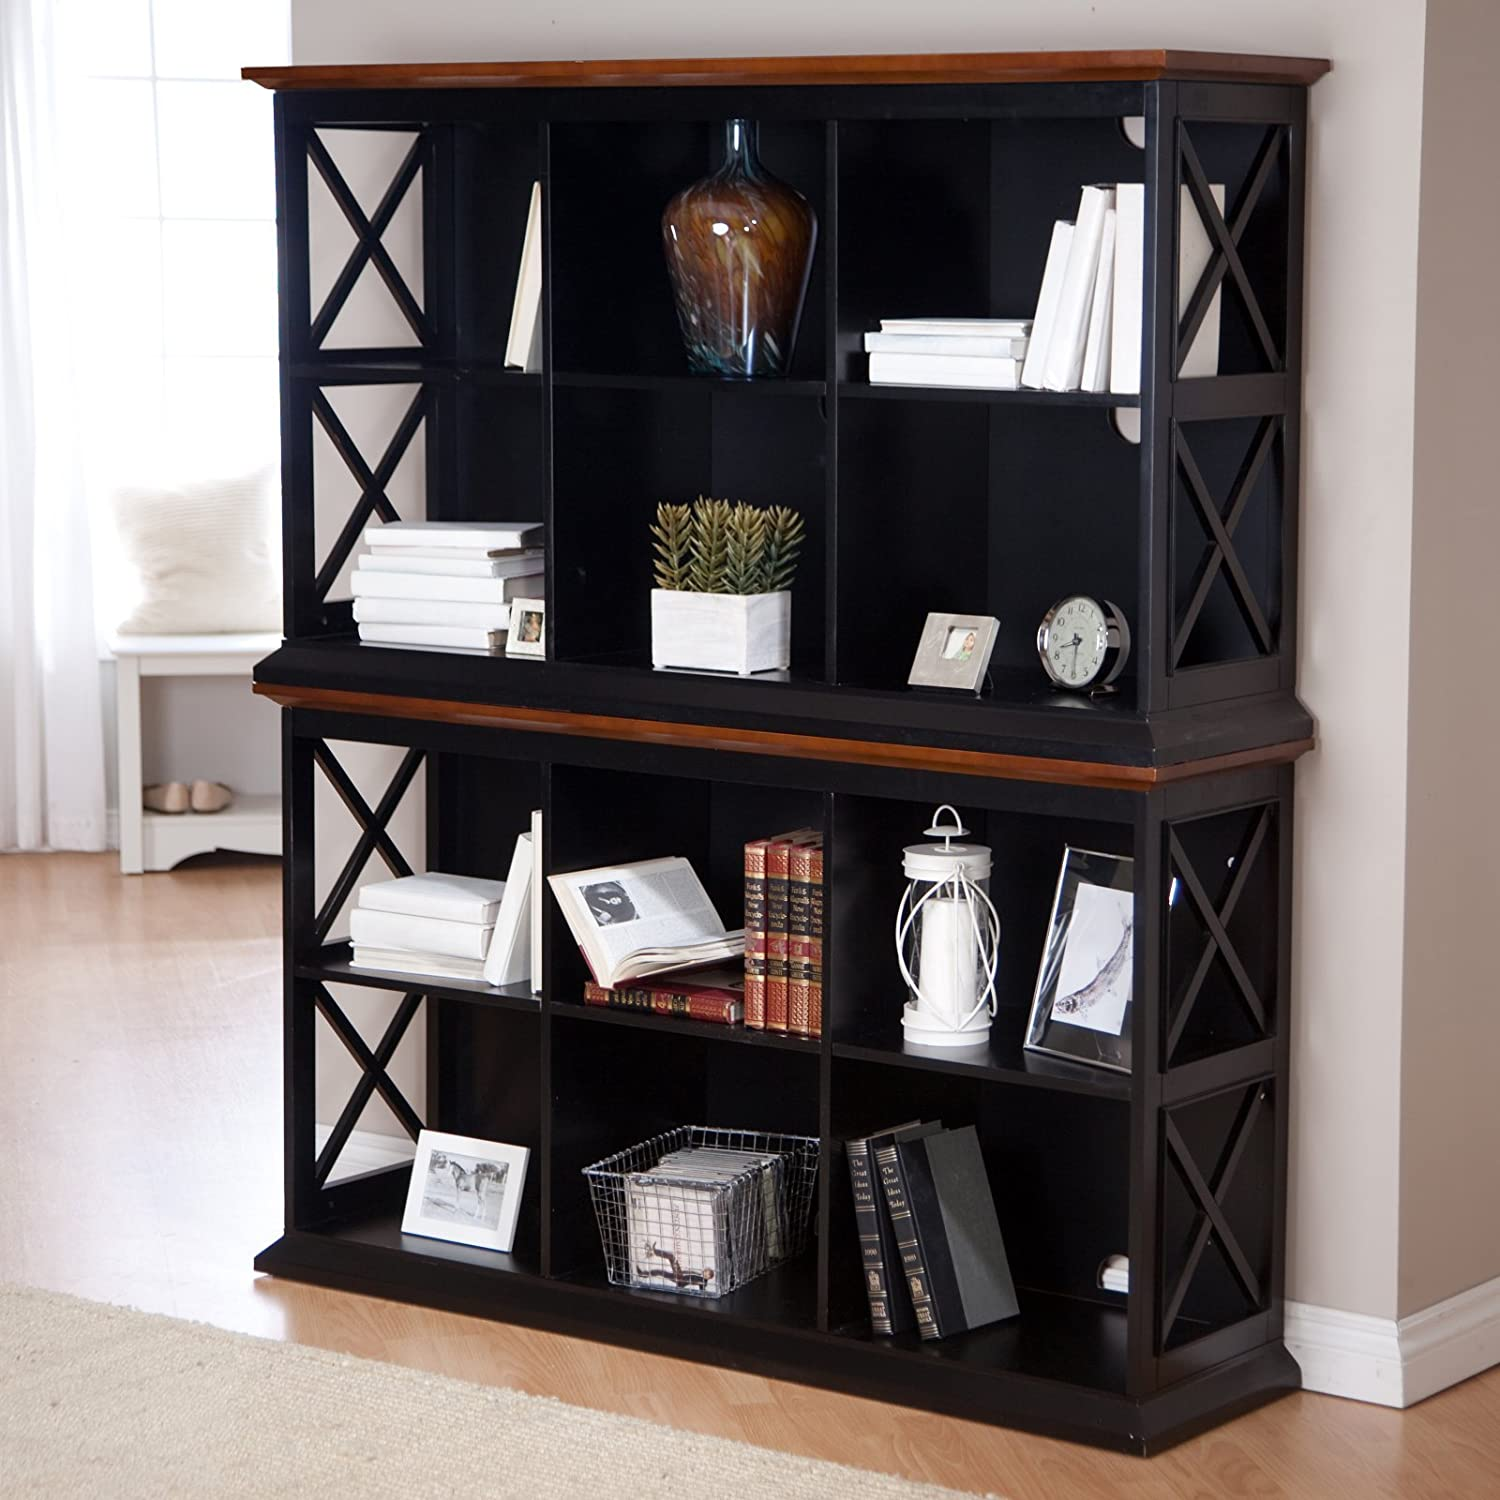 bookcase bookcases attachment photos stands stand view of furniture showing gallery media tv with interior baking